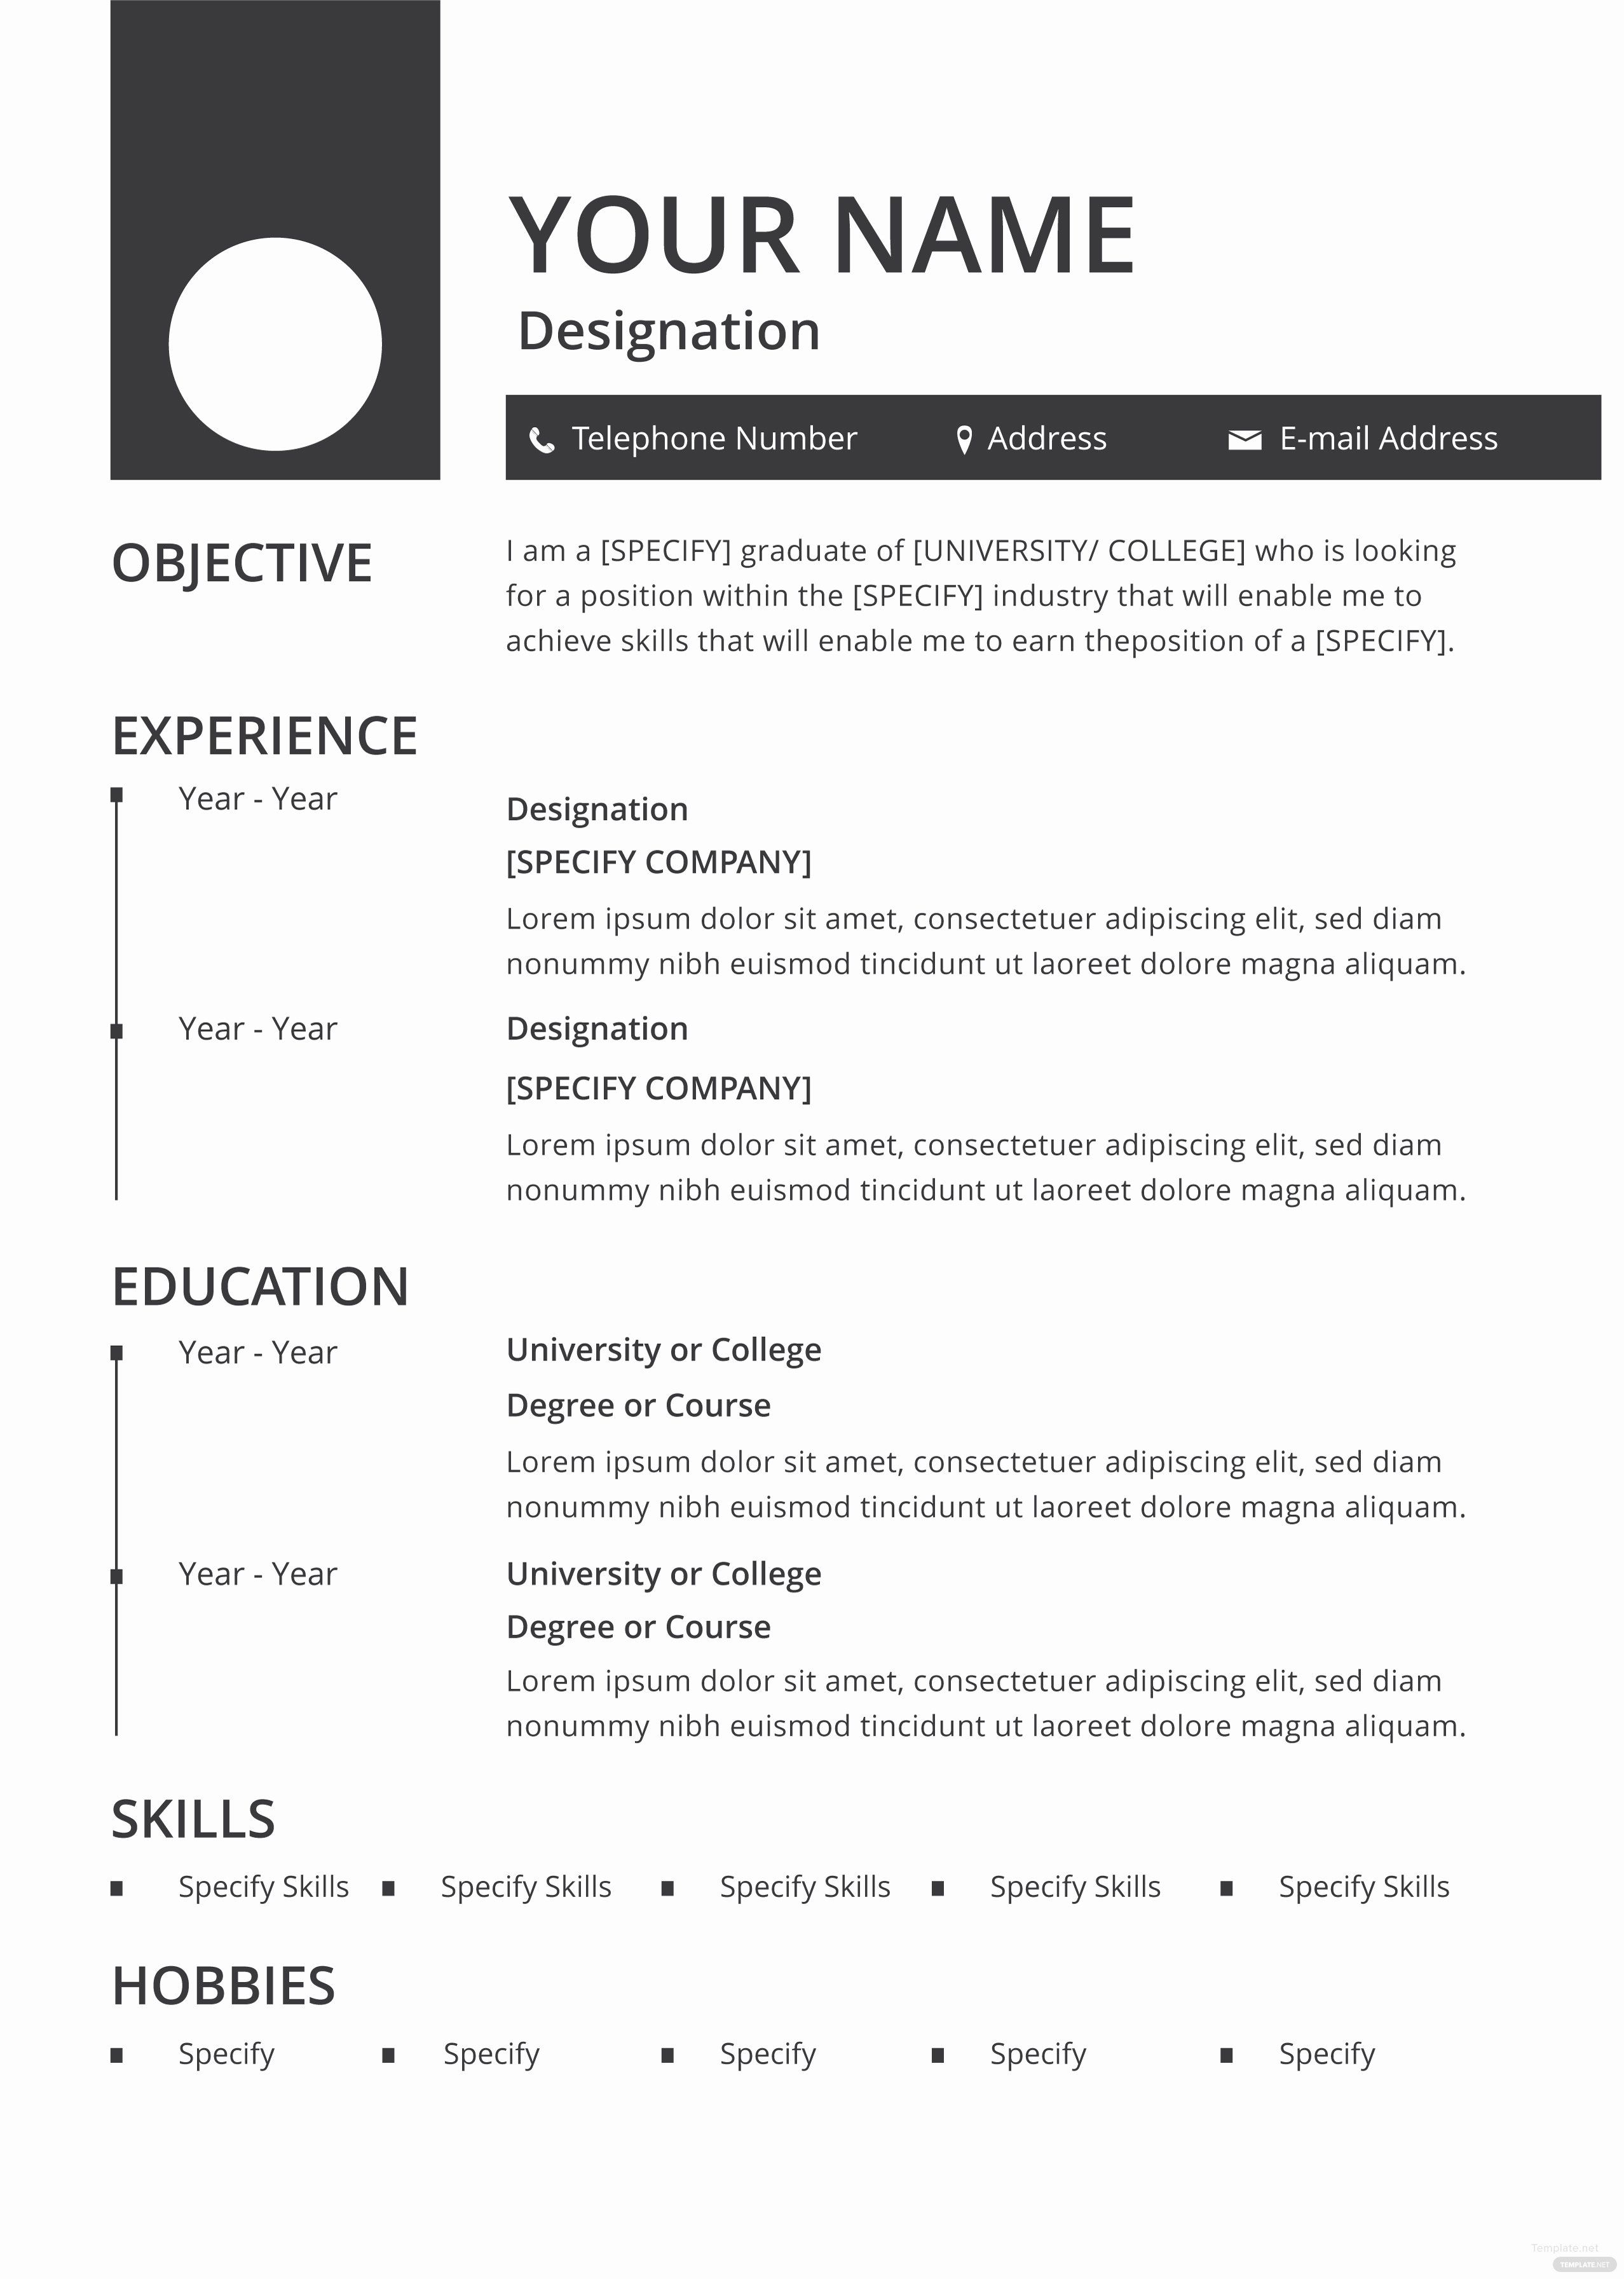 Attractive Resume Templates Free Download Best Of Free Blank Resume And Cv Template In Adobe Shop Job Resume Format Best Resume Format Resume Pdf